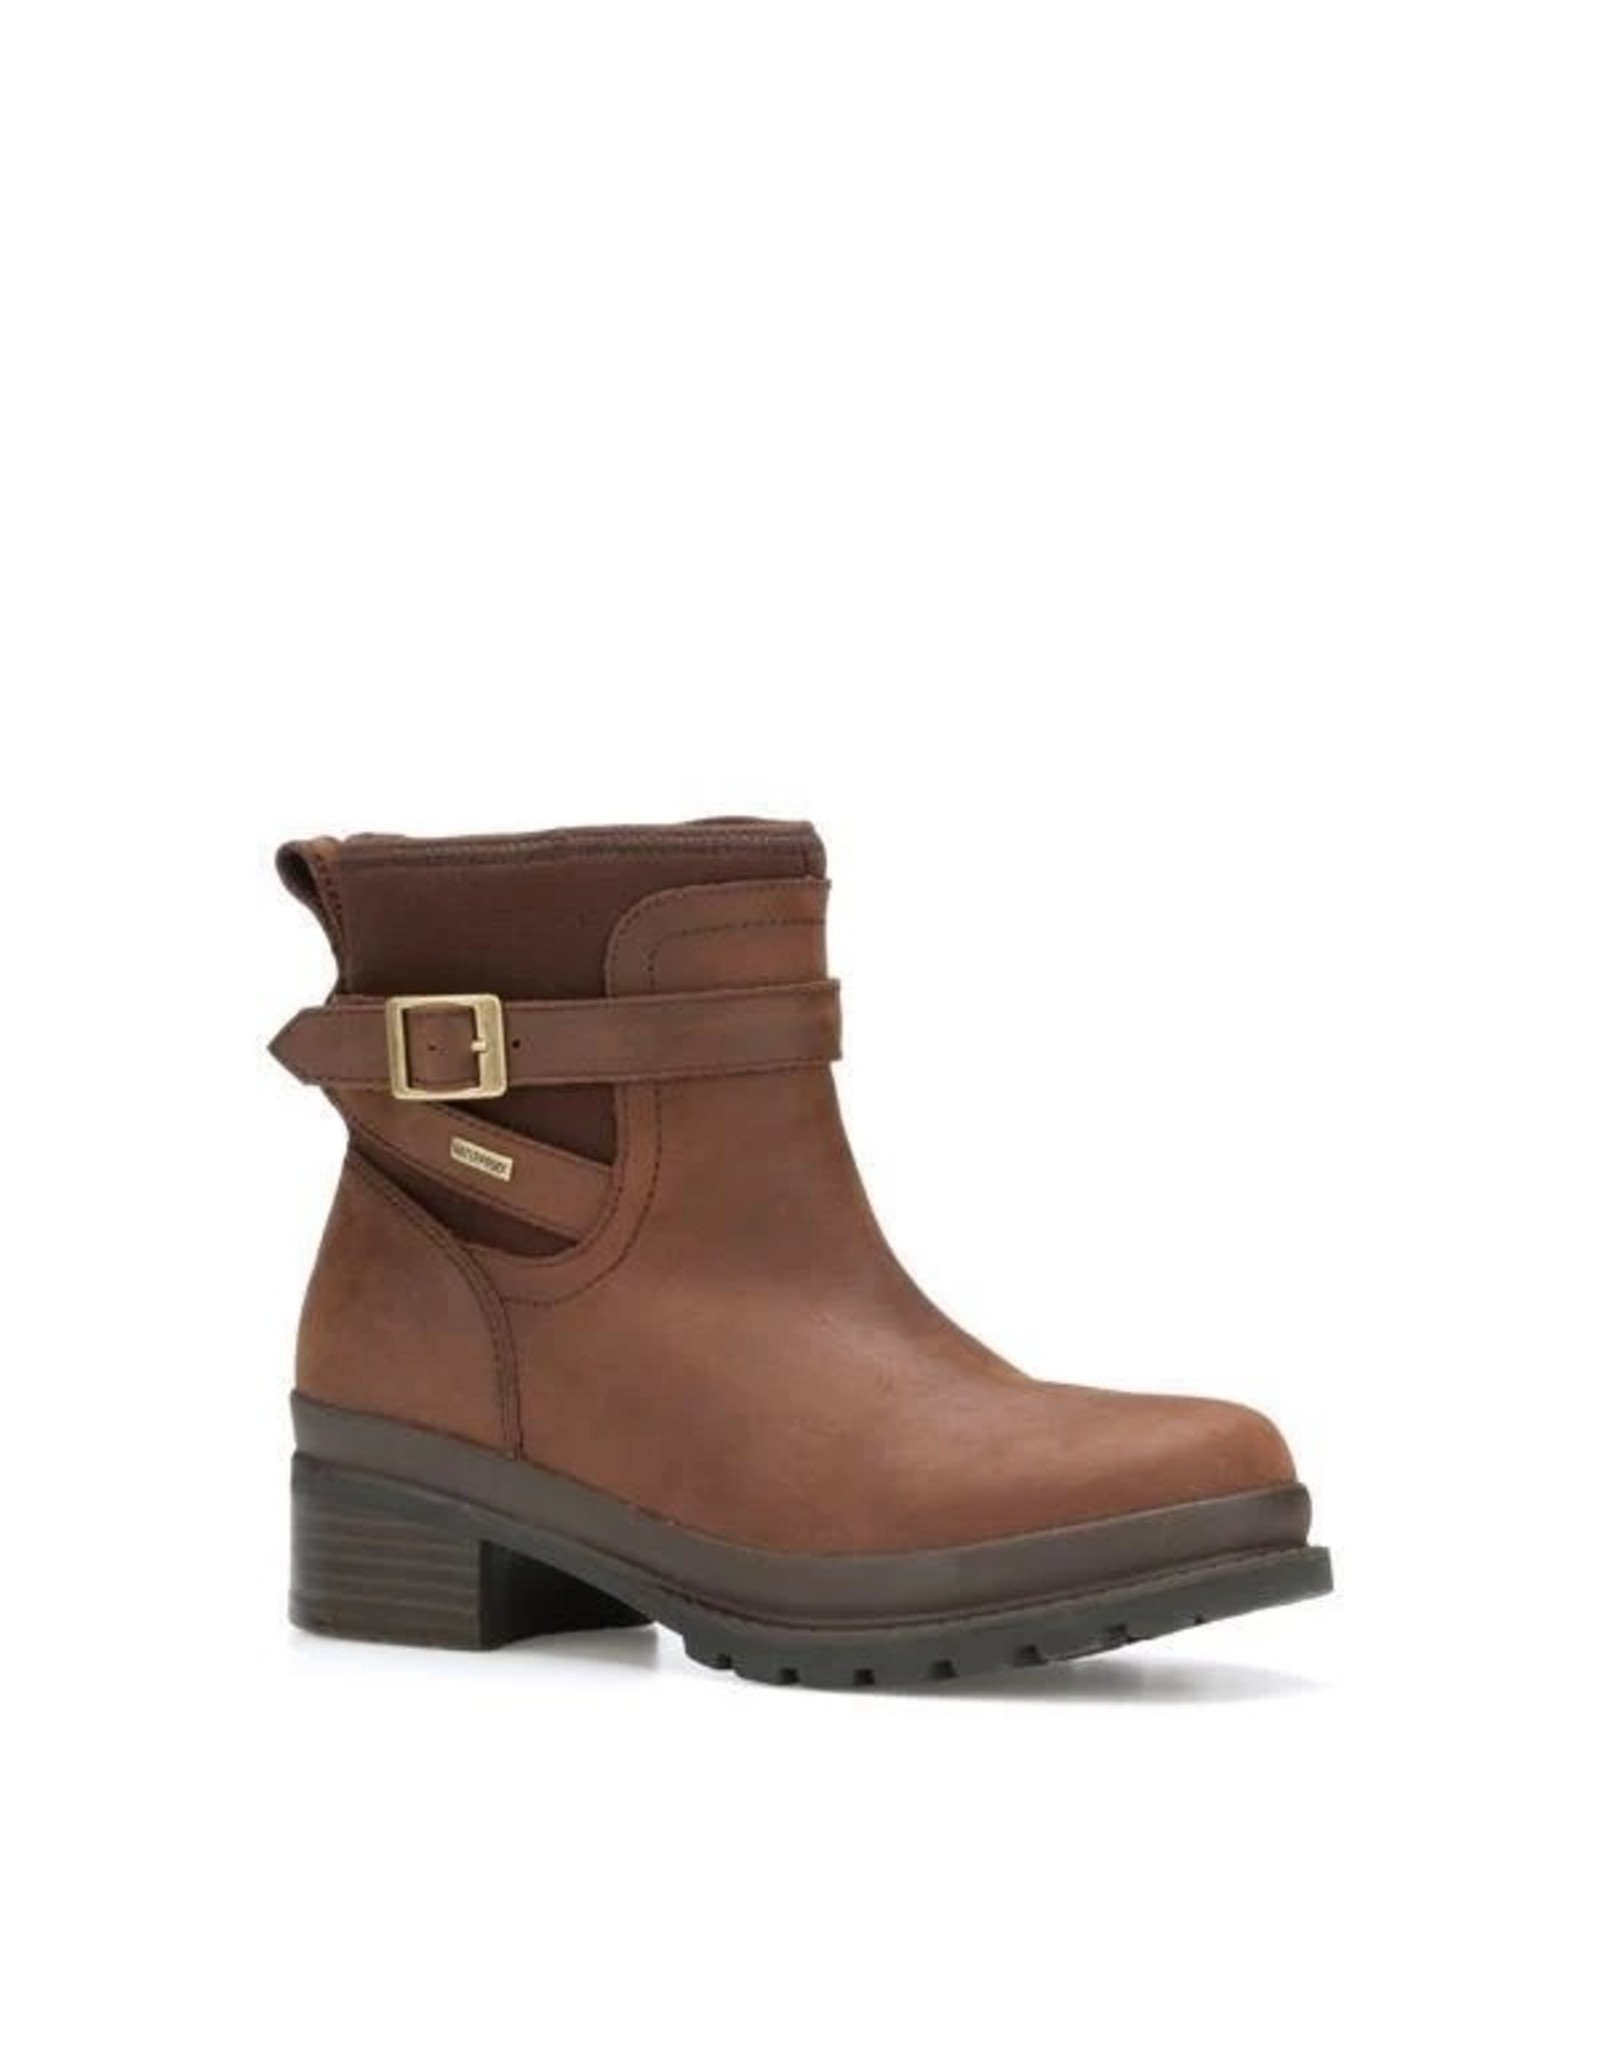 MUCK BOOT COMPANY MUCK LADIES LIBERTY ANKLE LEATHER BOOT LWK-900 BROWN